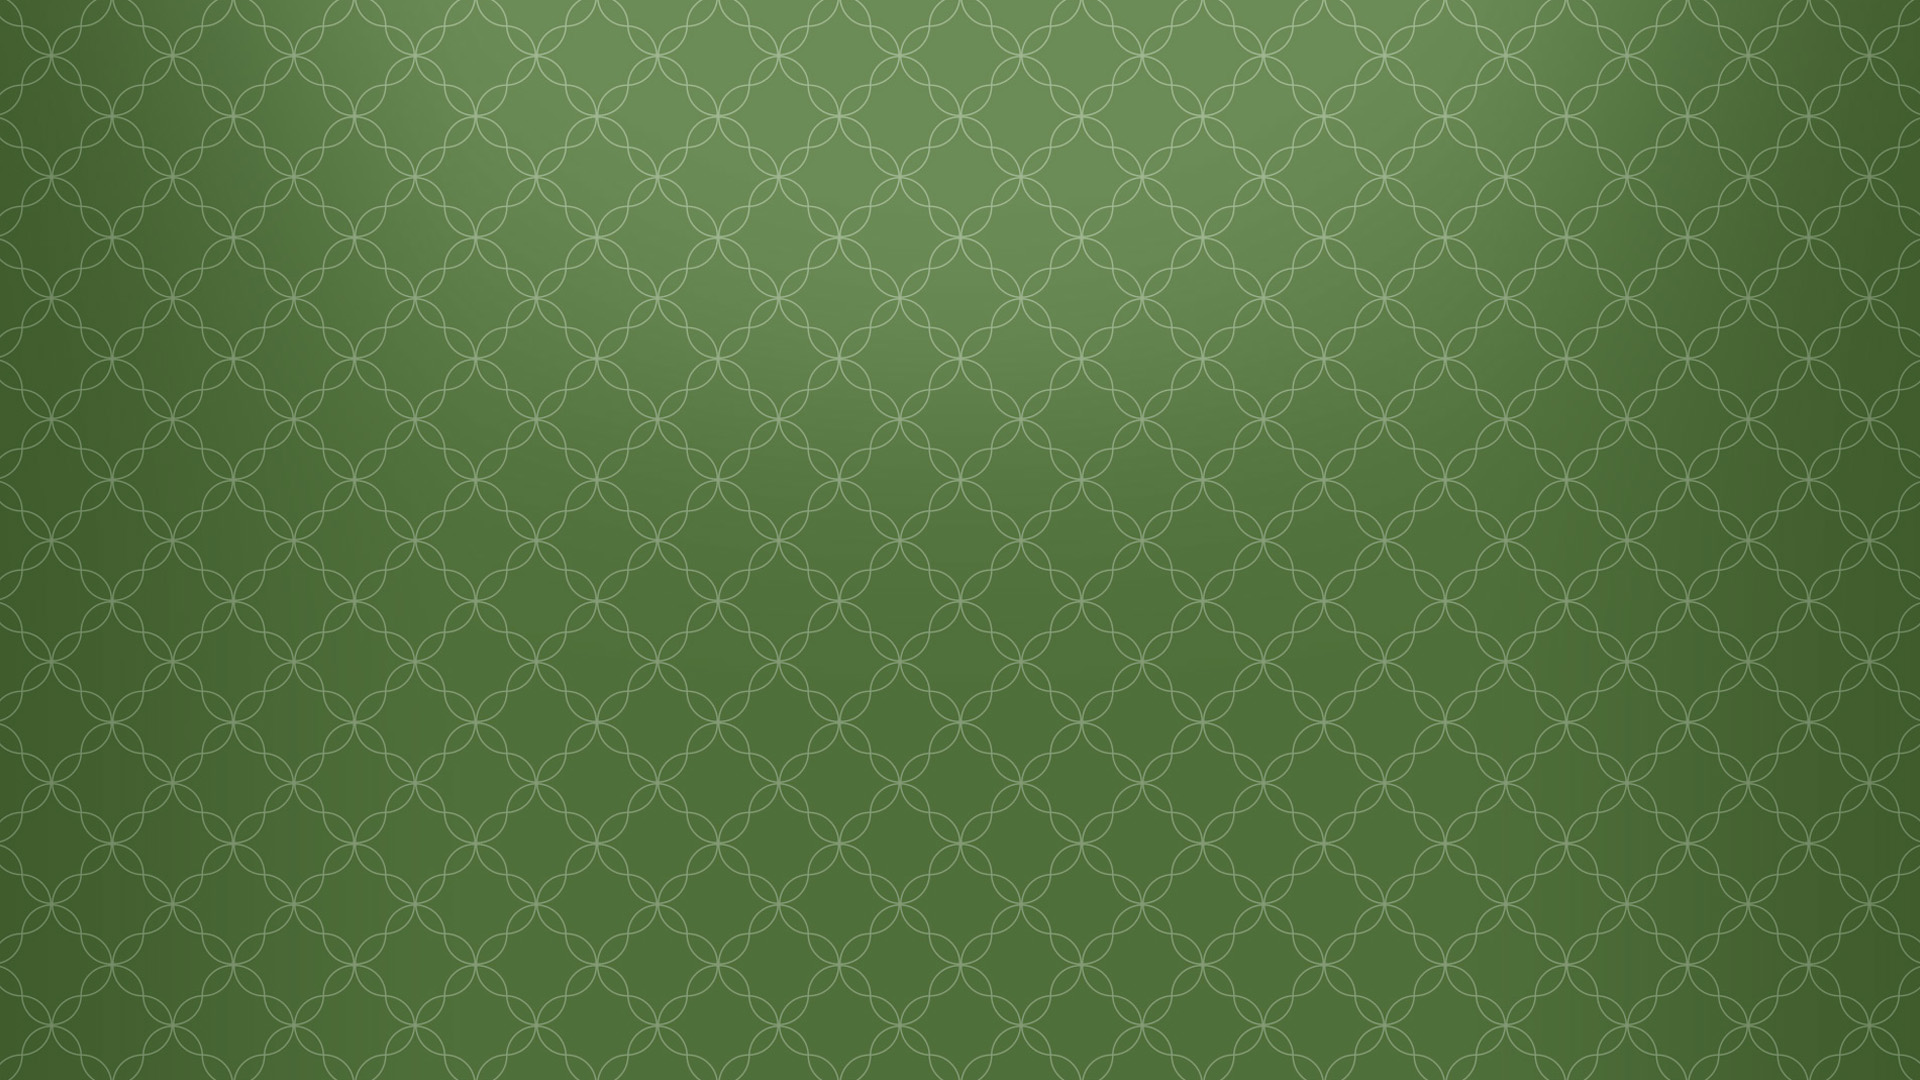 Simple Green Texture Wallpapers, Green Backgrounds, Pictures and